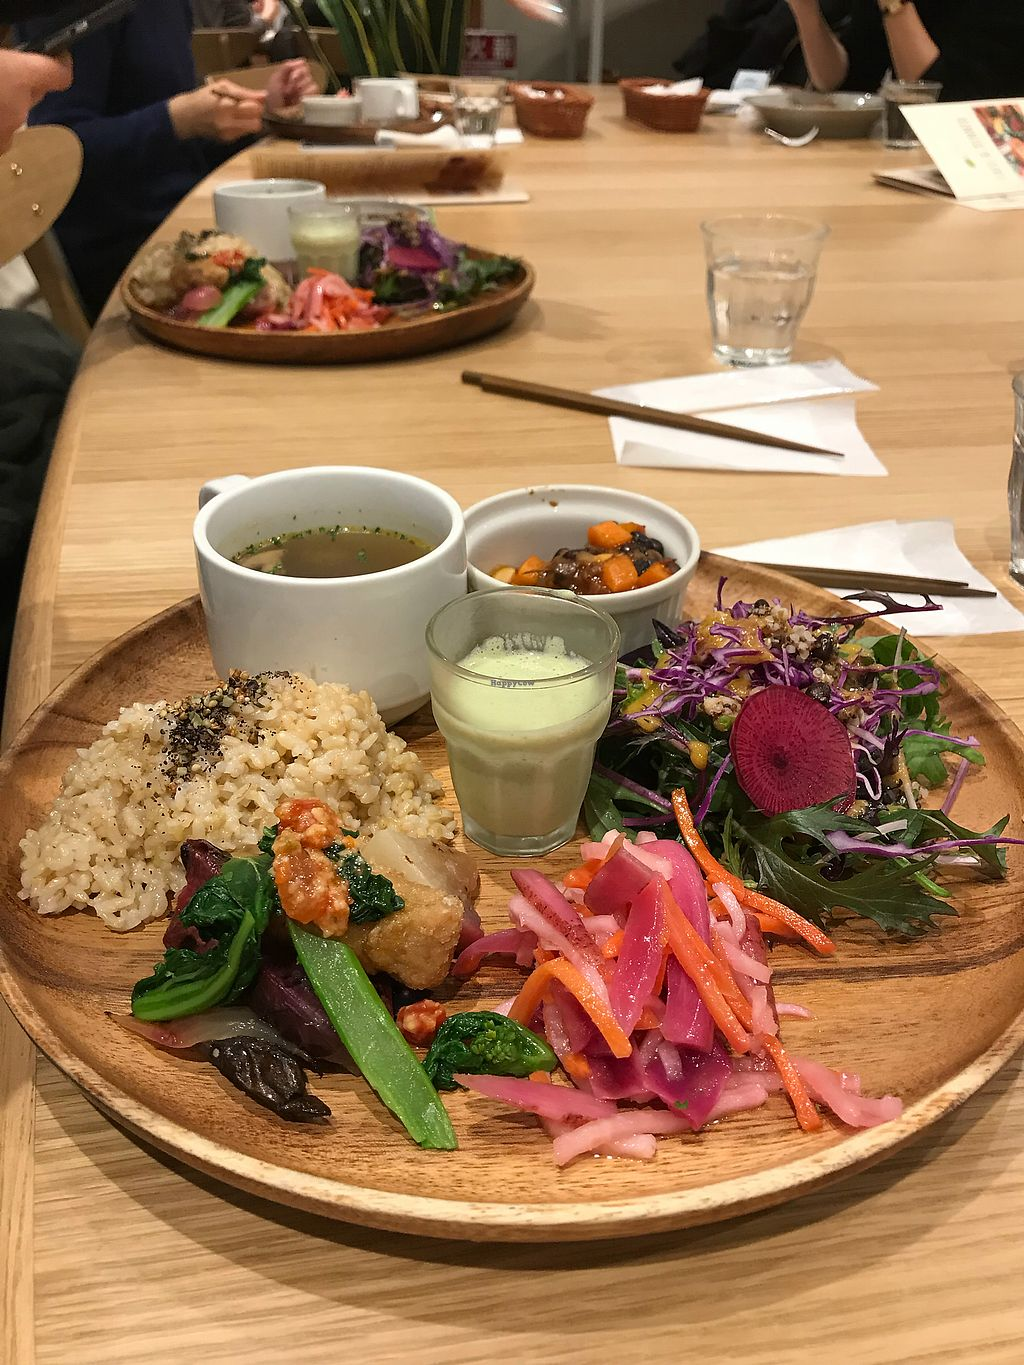 """Photo of Chaya Macrobiotics - Shiodome  by <a href=""""/members/profile/Keito26"""">Keito26</a> <br/>Deli Plate  <br/> January 2, 2018  - <a href='/contact/abuse/image/31179/341895'>Report</a>"""